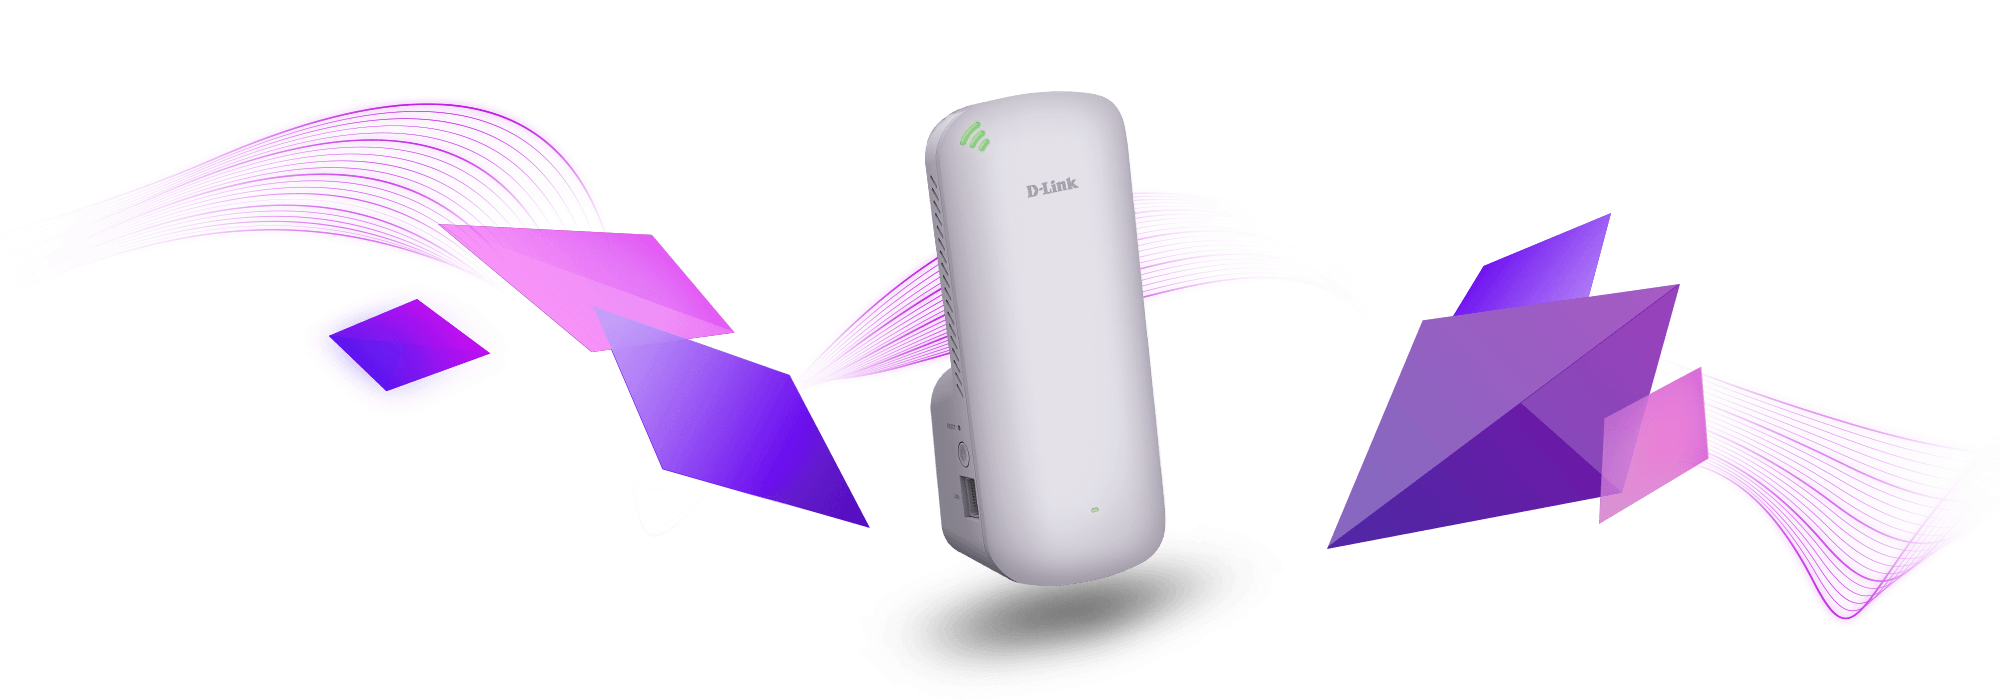 DAP-X1860 AX1800 Mesh Wi-Fi 6 Range Extender with purple wave lines.